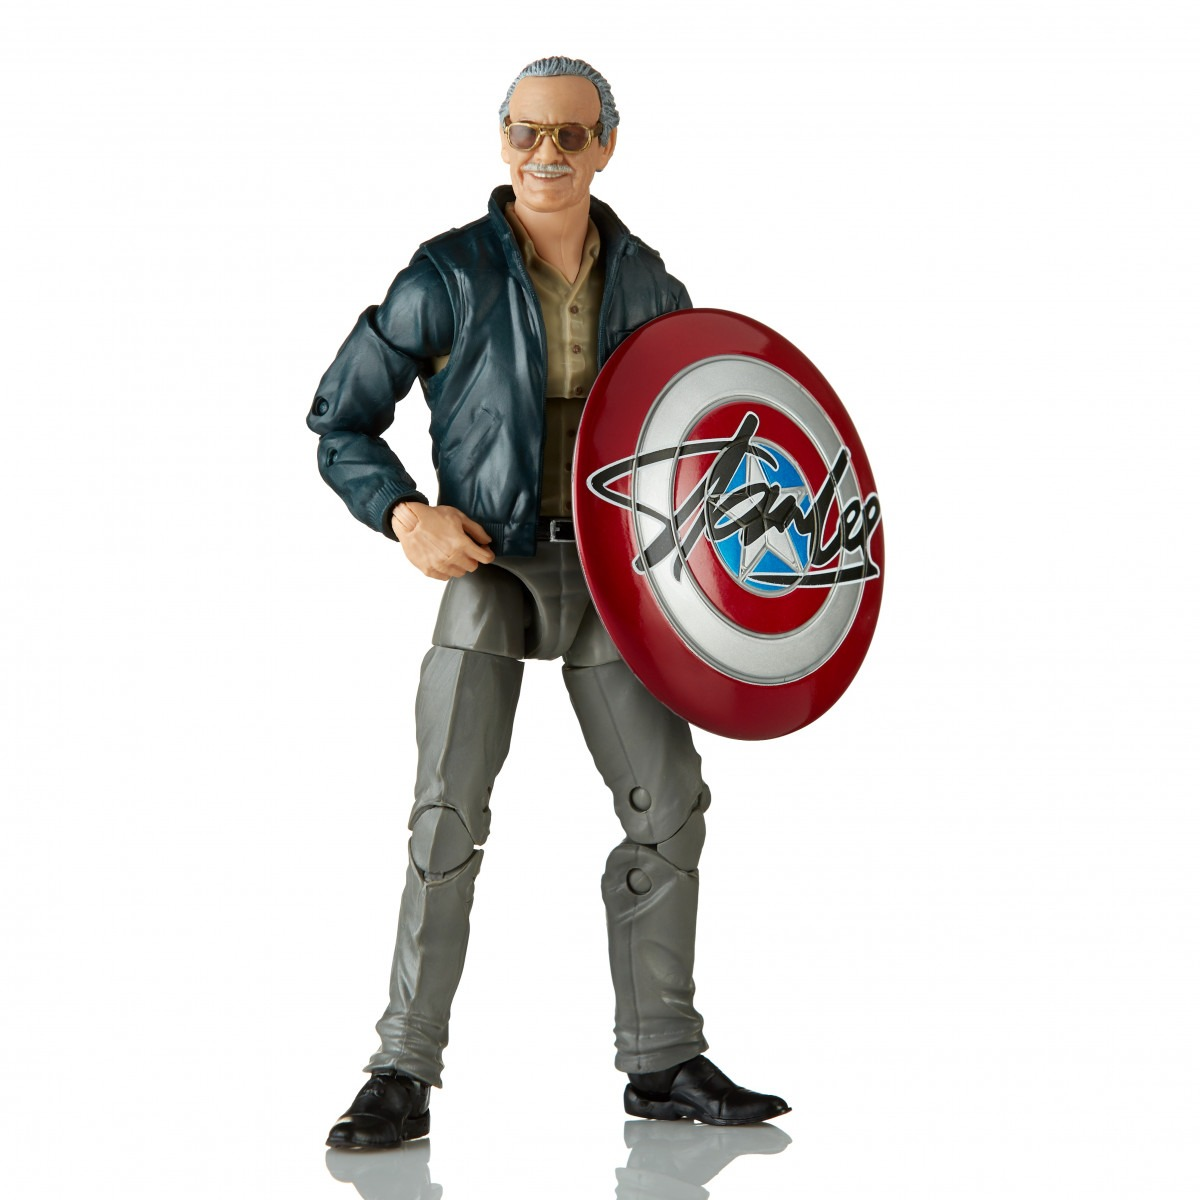 Hasbro unveils new Stan Lee, Fantastic Four and Deadpool Marvel Legends figures at New York Comic Con